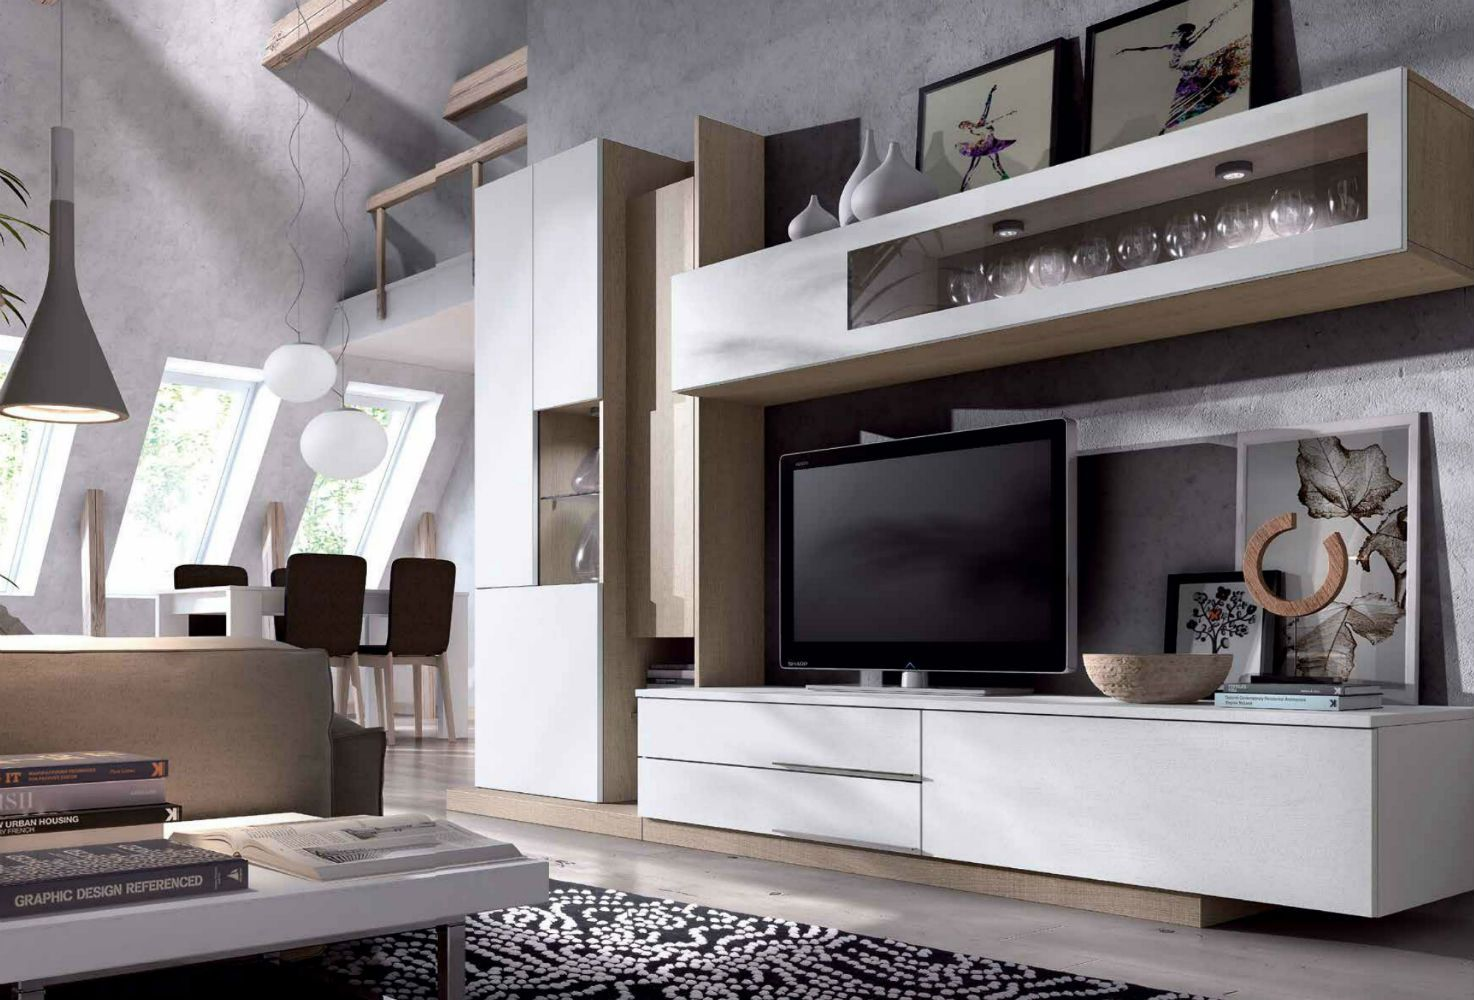 22 Best Salones Images On Pinterest Tv Wall Units Tv Walls And  # Muebles Zb Zaragoza